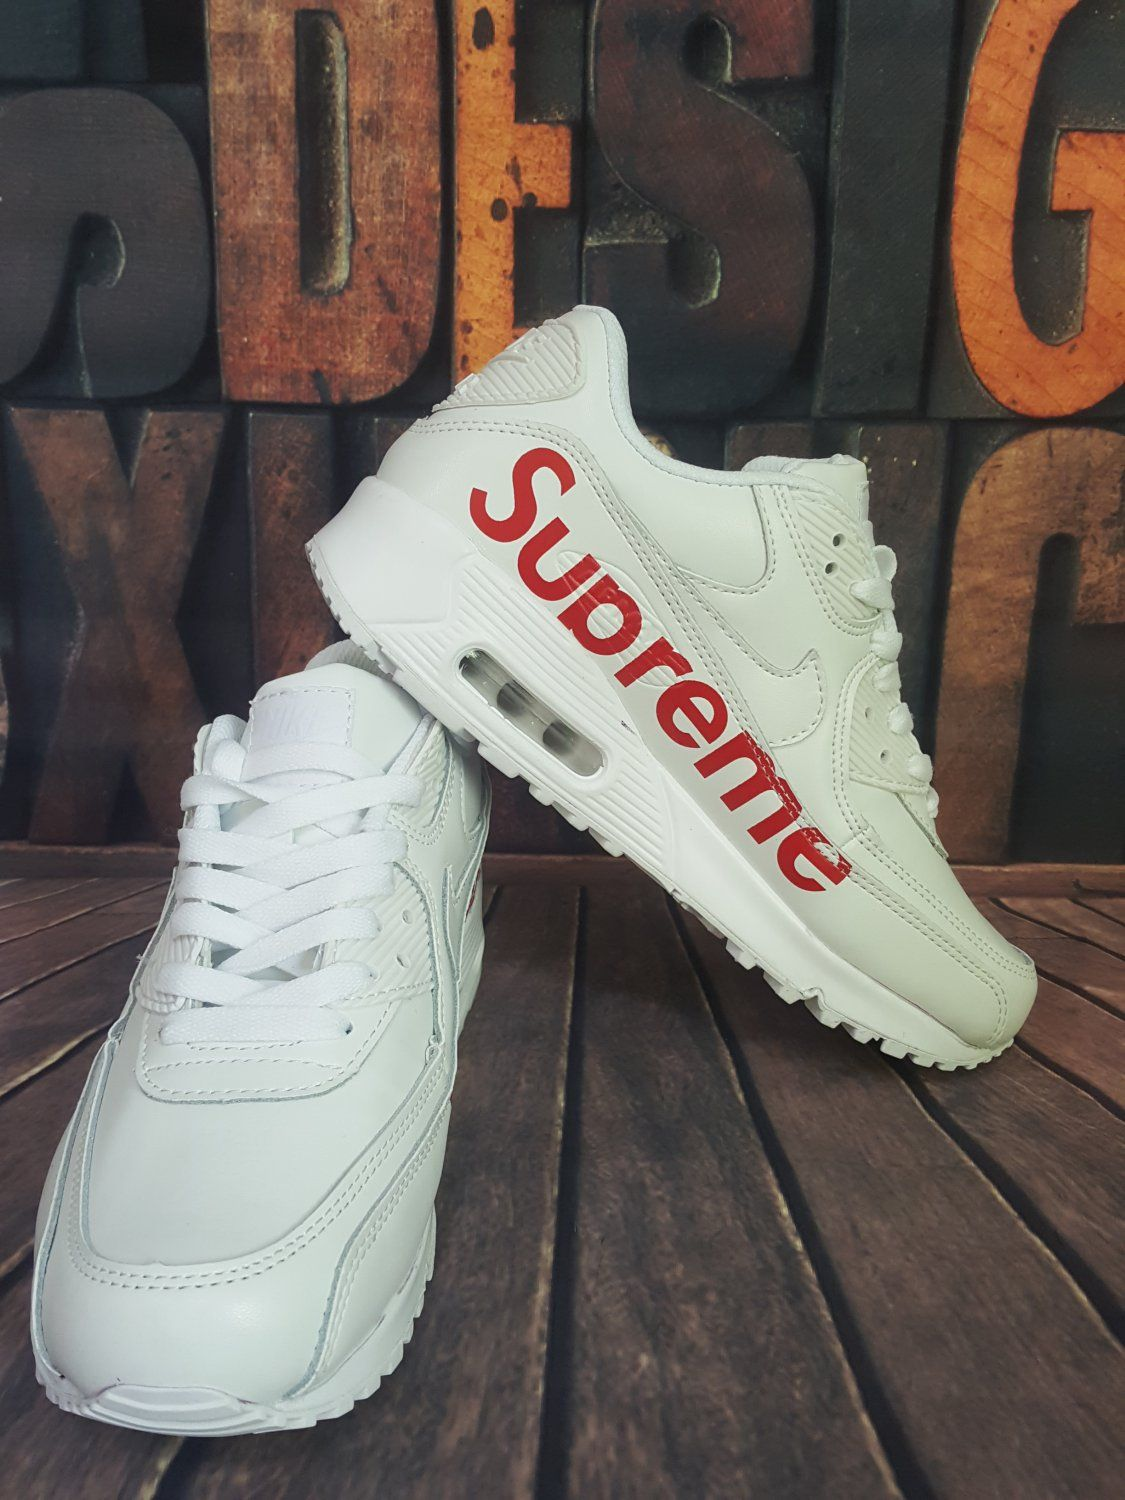 new product 2fe9e 557df Nike Air Max 90 X Supreme. Only $139.99 with free shipping ...